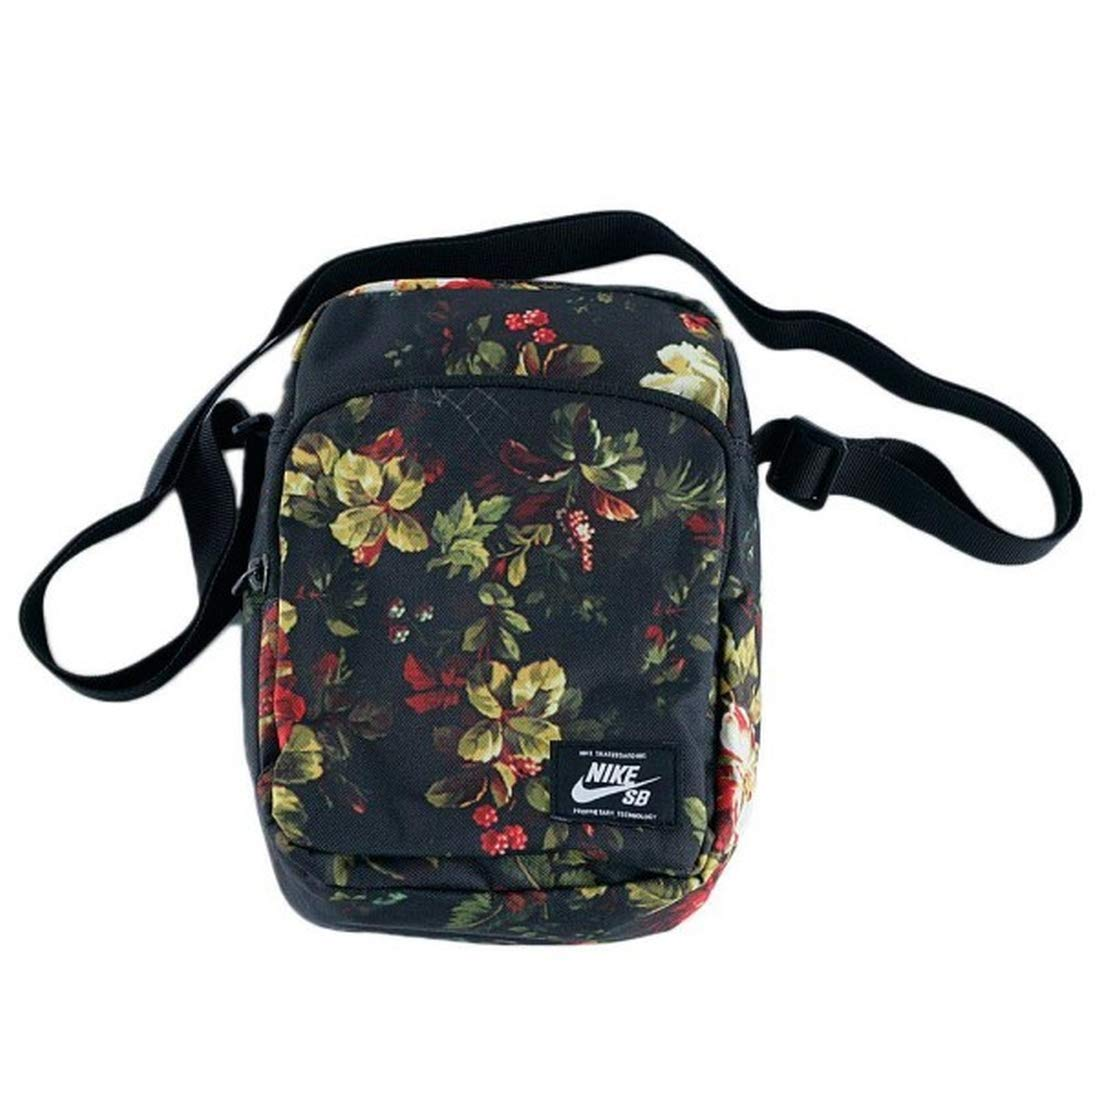 8a1a70279cef Galleon - Nike SB Heritage Women s Waistpack (One Size